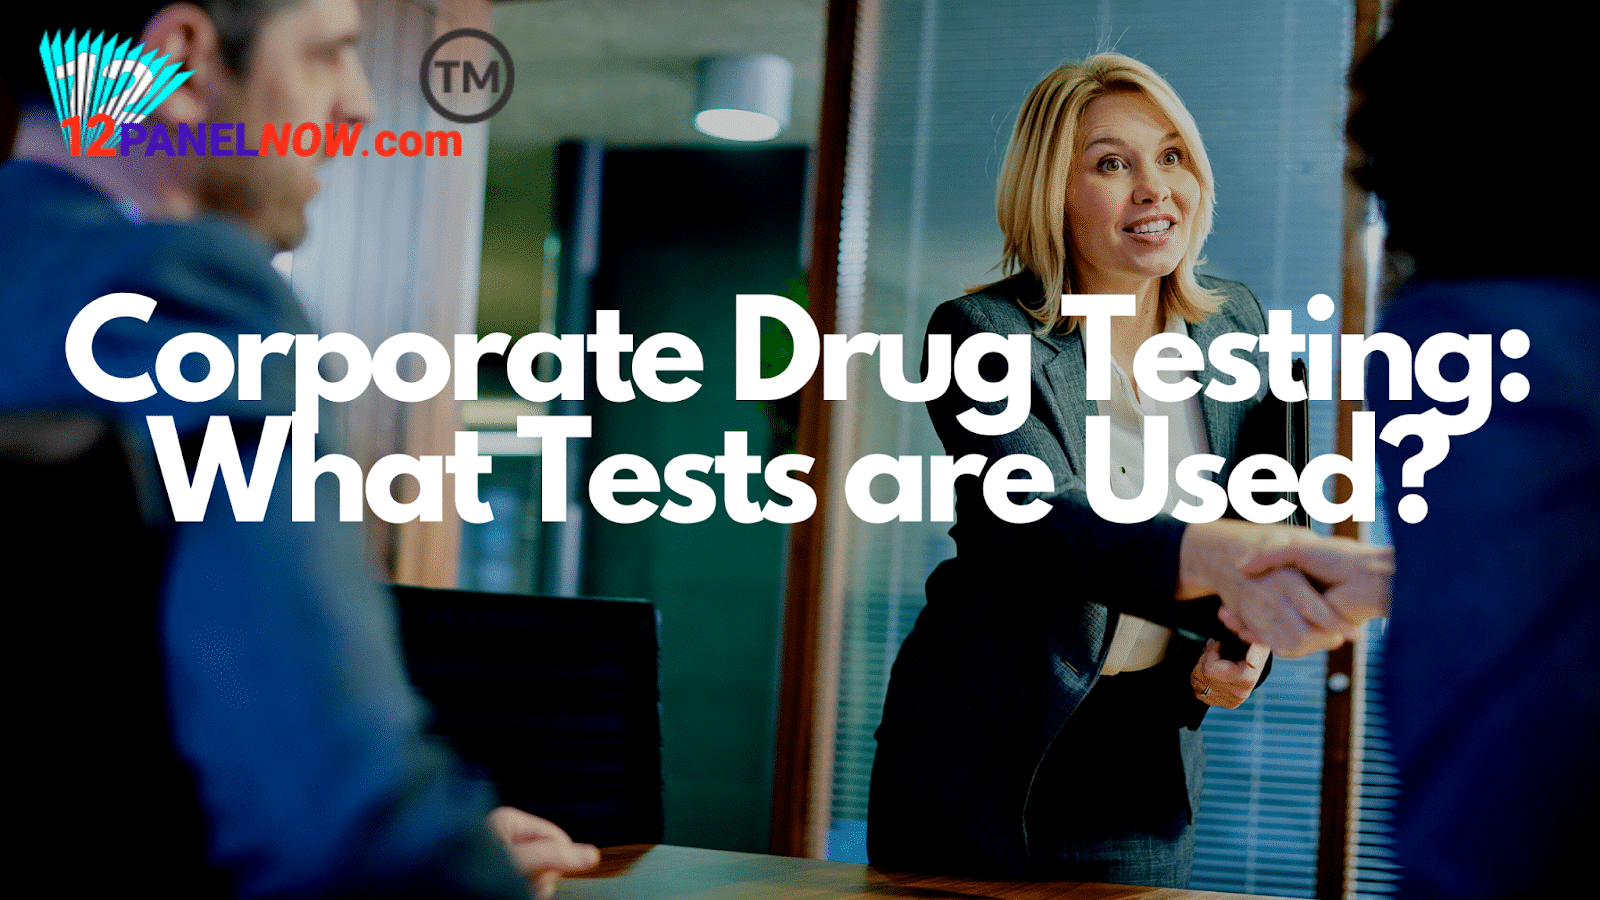 What Drug Tests are Used in the Corporate Industry?